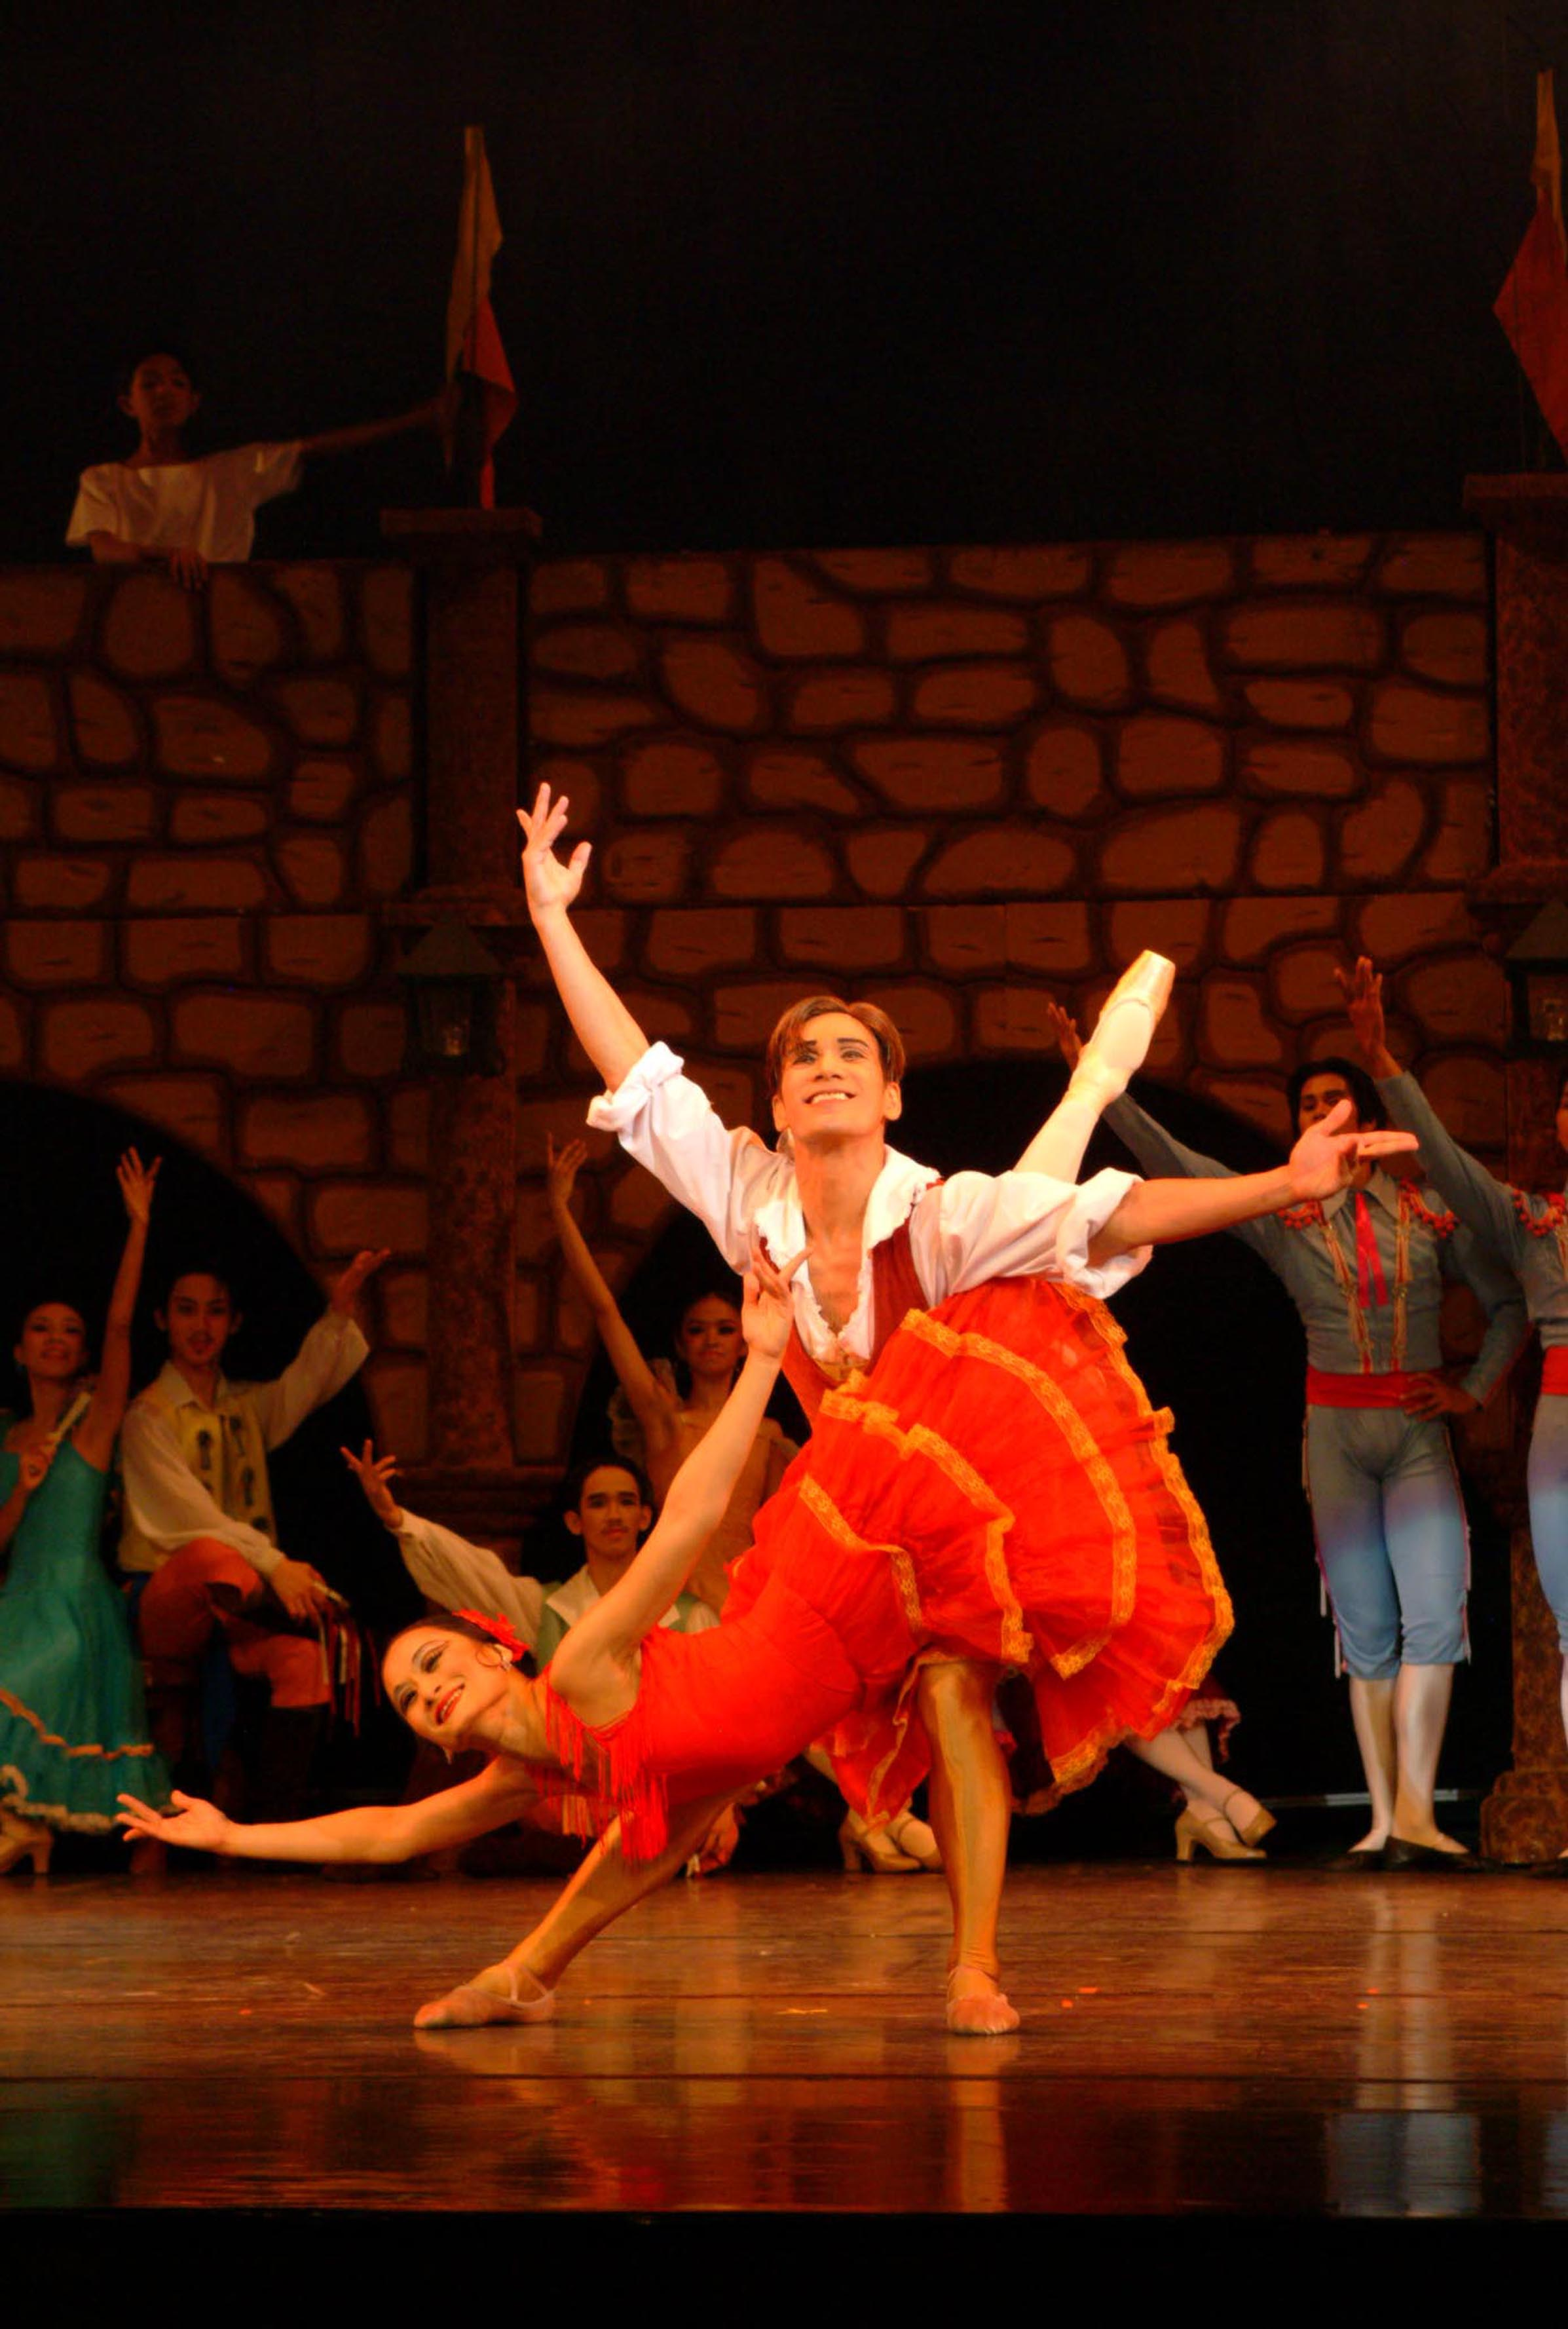 The fish dive is a complicated partnering step essential in classical ballet. In this photo from  Don Quixote  in 2004, Lisa Macuja-Elizalde and Osias Barroso execute the difficult step with ease, making the movement appear effortless with a smile. Photo by Ocs Alvarez